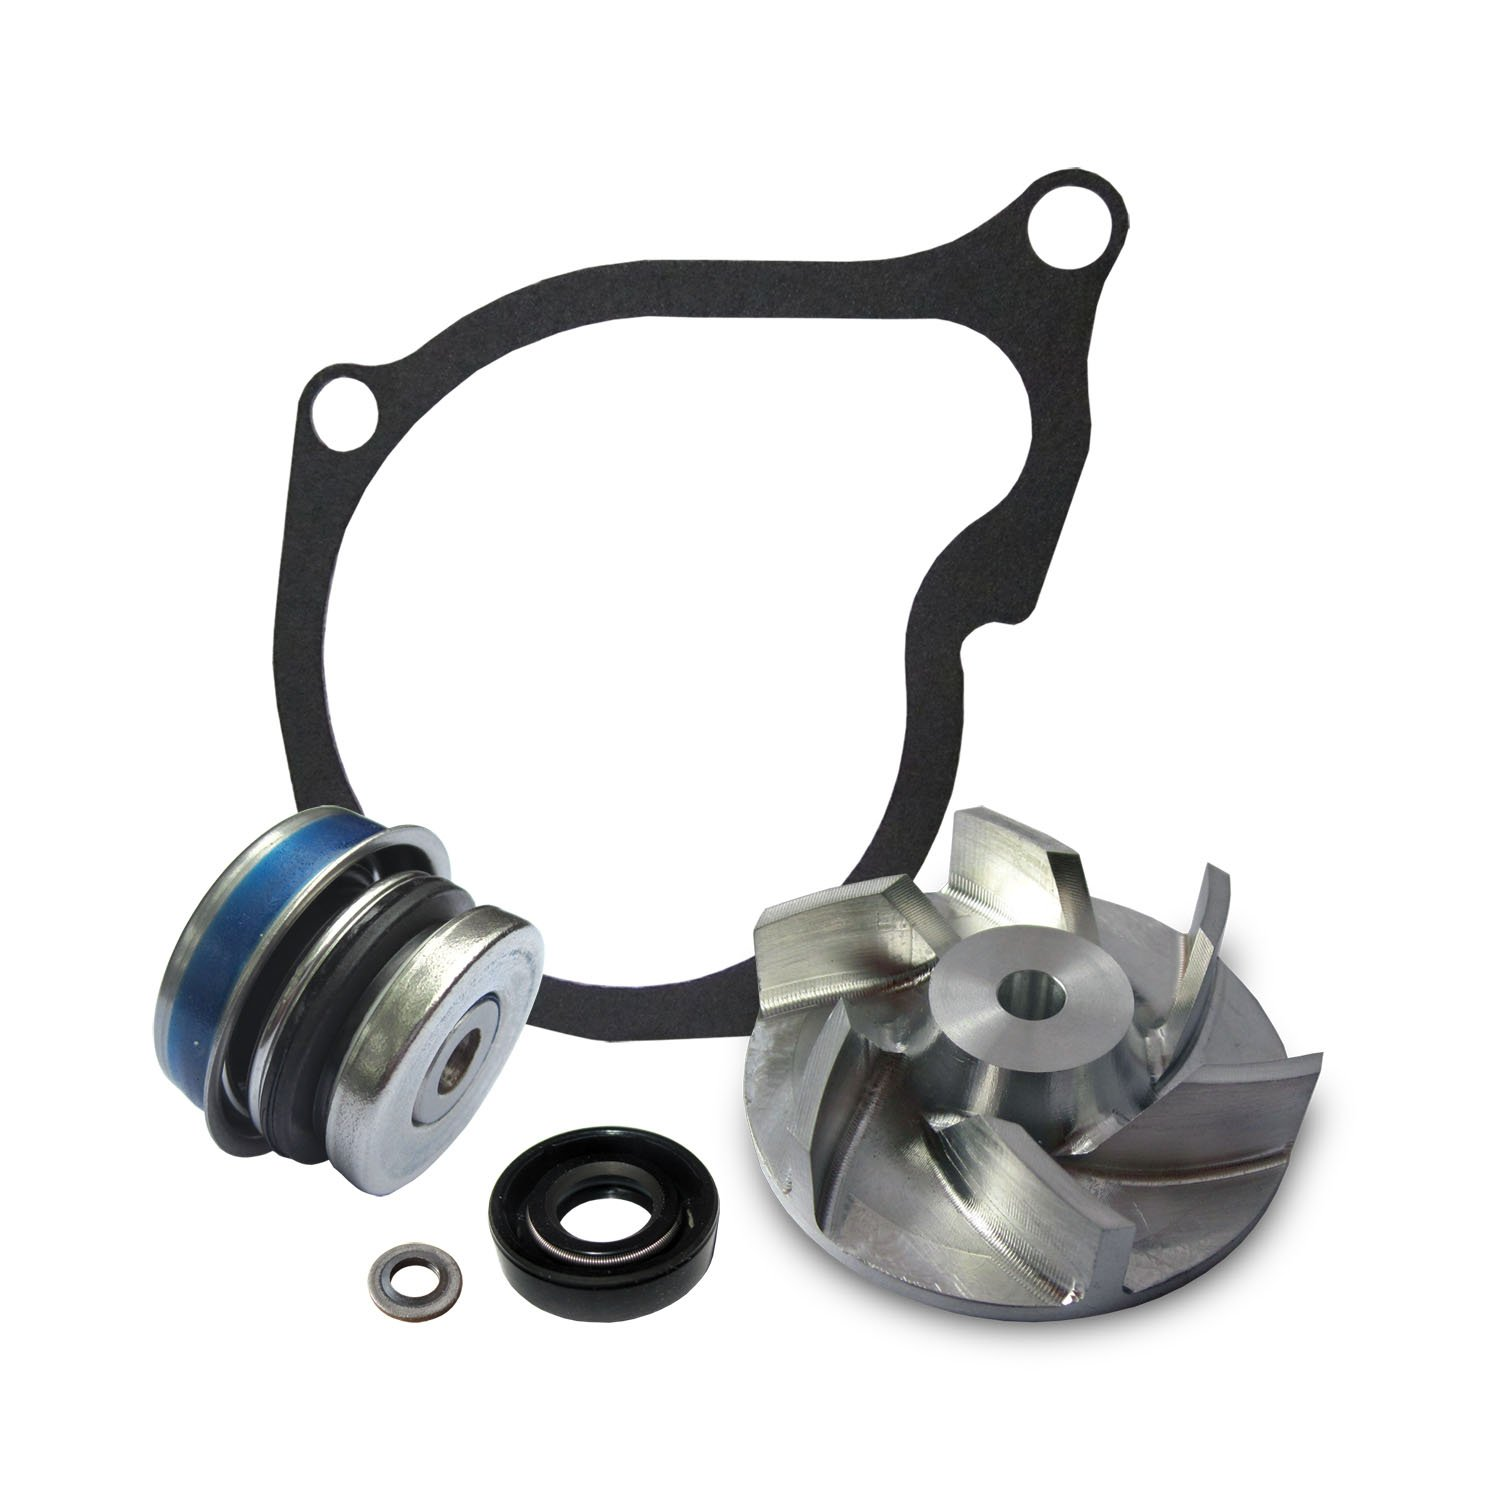 Polaris Sportsman 400 500 Water Pump Rebuild Kit with Billet Impeller by Quad Logic